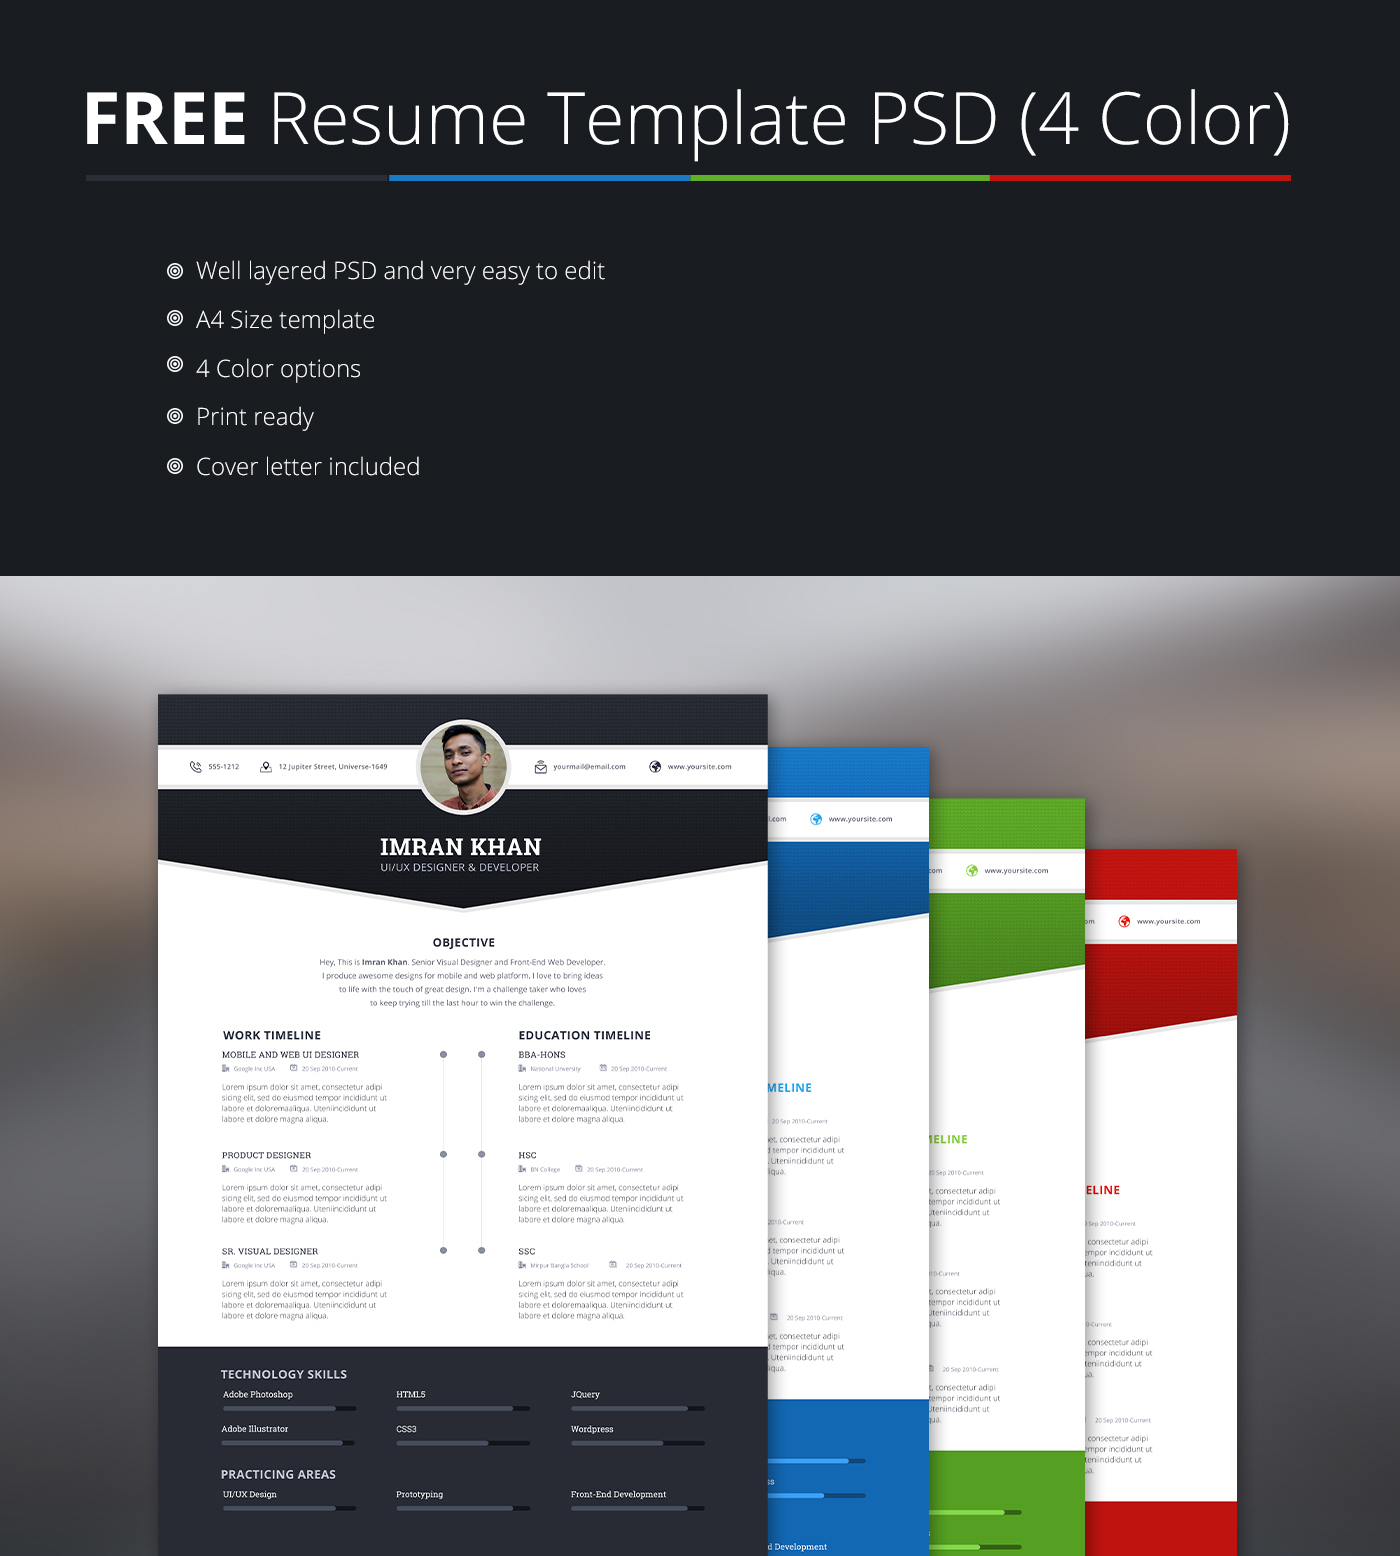 Free resume template psd 4 colors on behance yelopaper Gallery